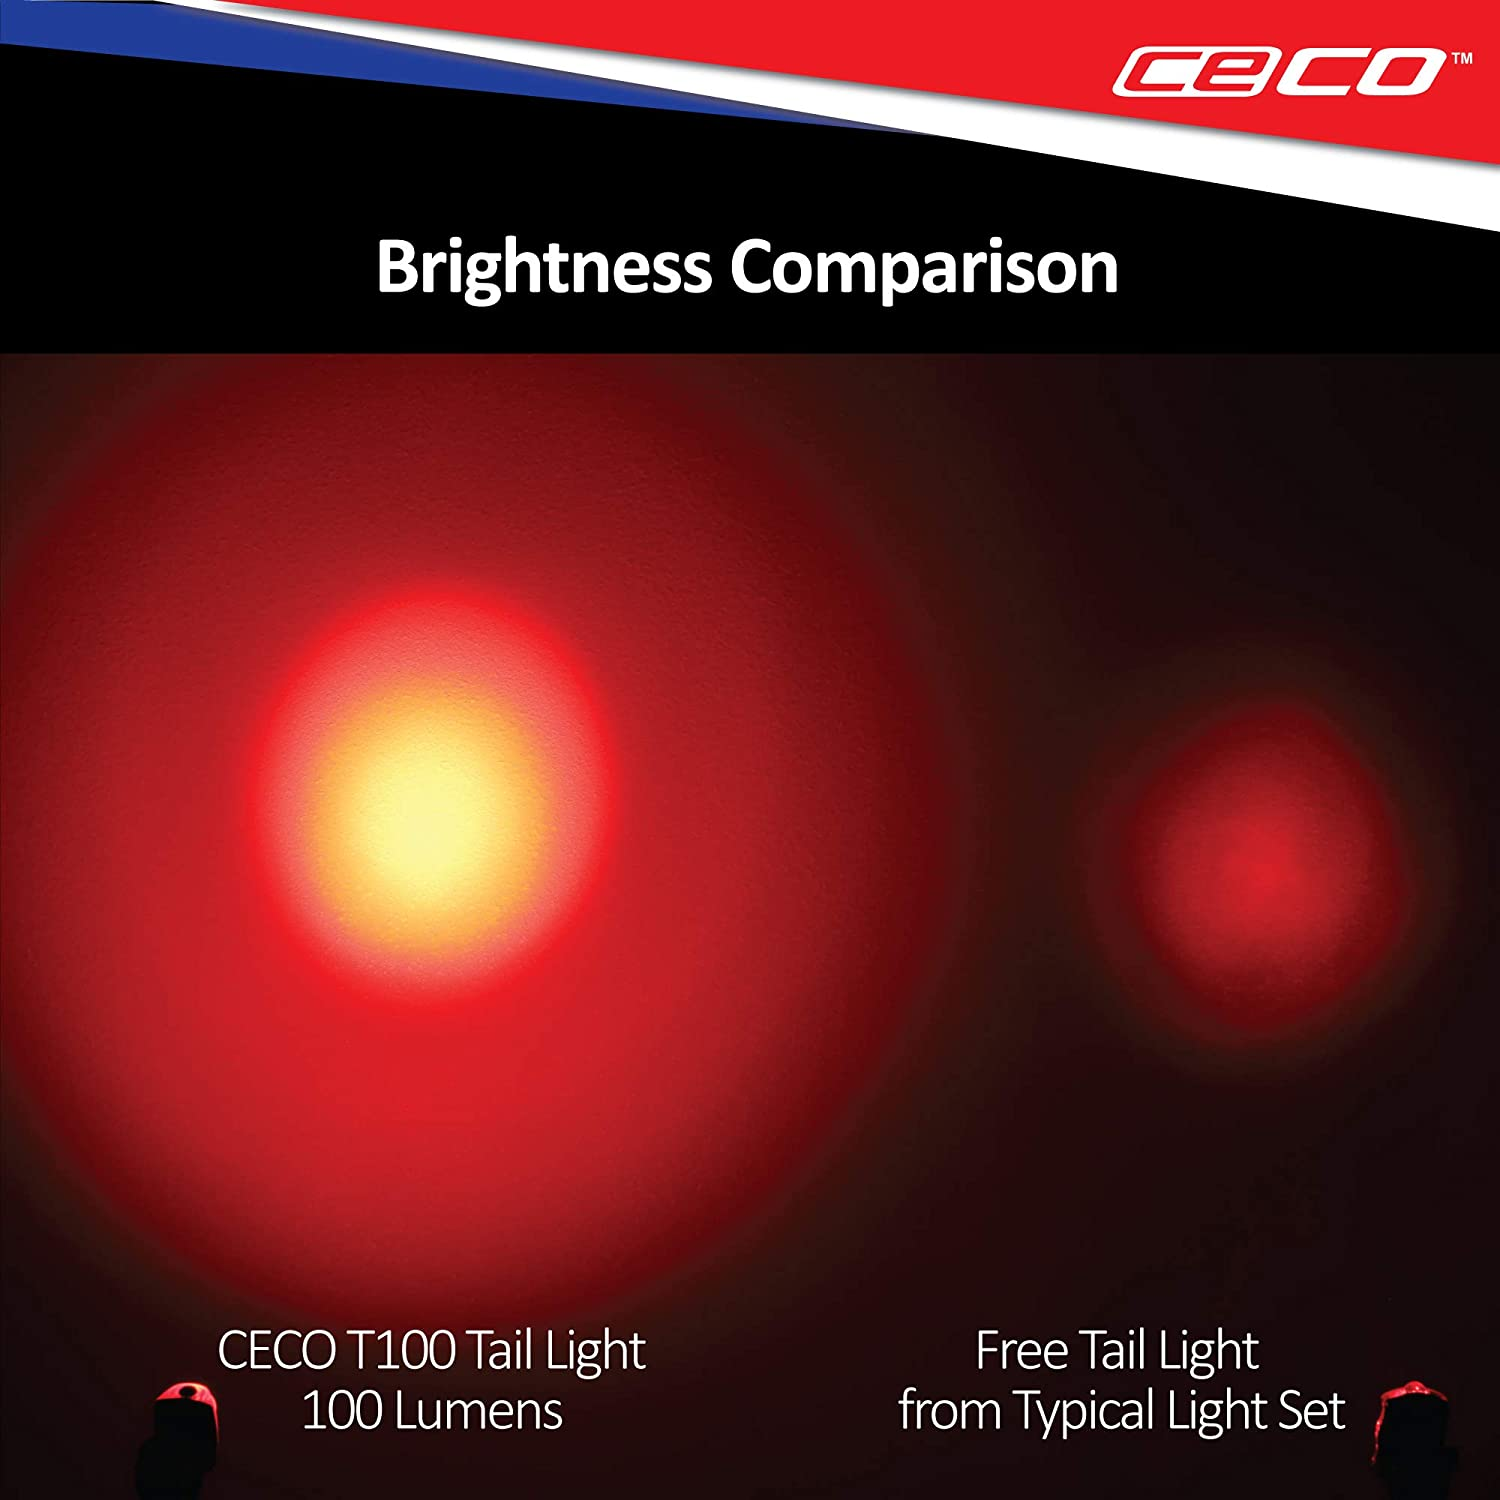 Brightest USB Rechargeable Bike Light Set Available for All Cyclists 750 Lumen Headlight /& 100 Lumen Tail Light Combo Pack for Cyclists who Want to See far /& to be seen from afar CECO-USA